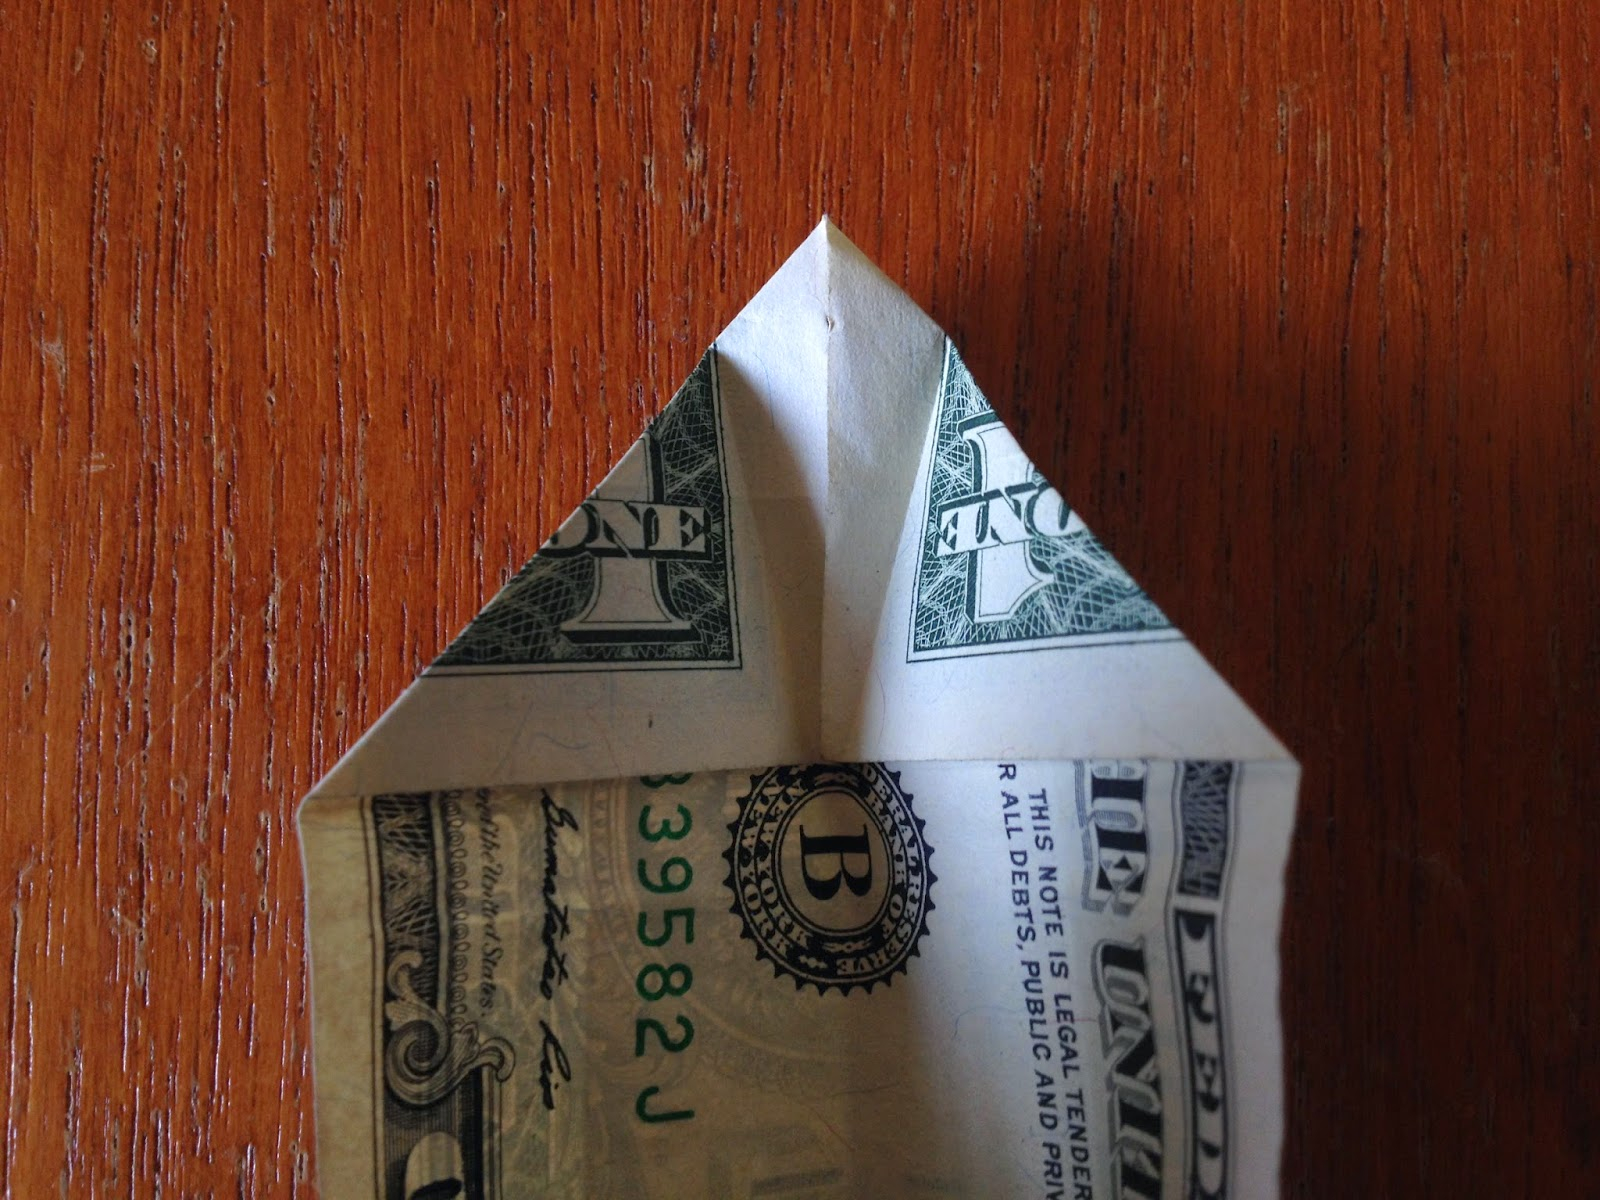 Origami Dollar Bill Shirt With Tie Dollar Bill Origami Shirt And Tie The Best Hobbies Blog